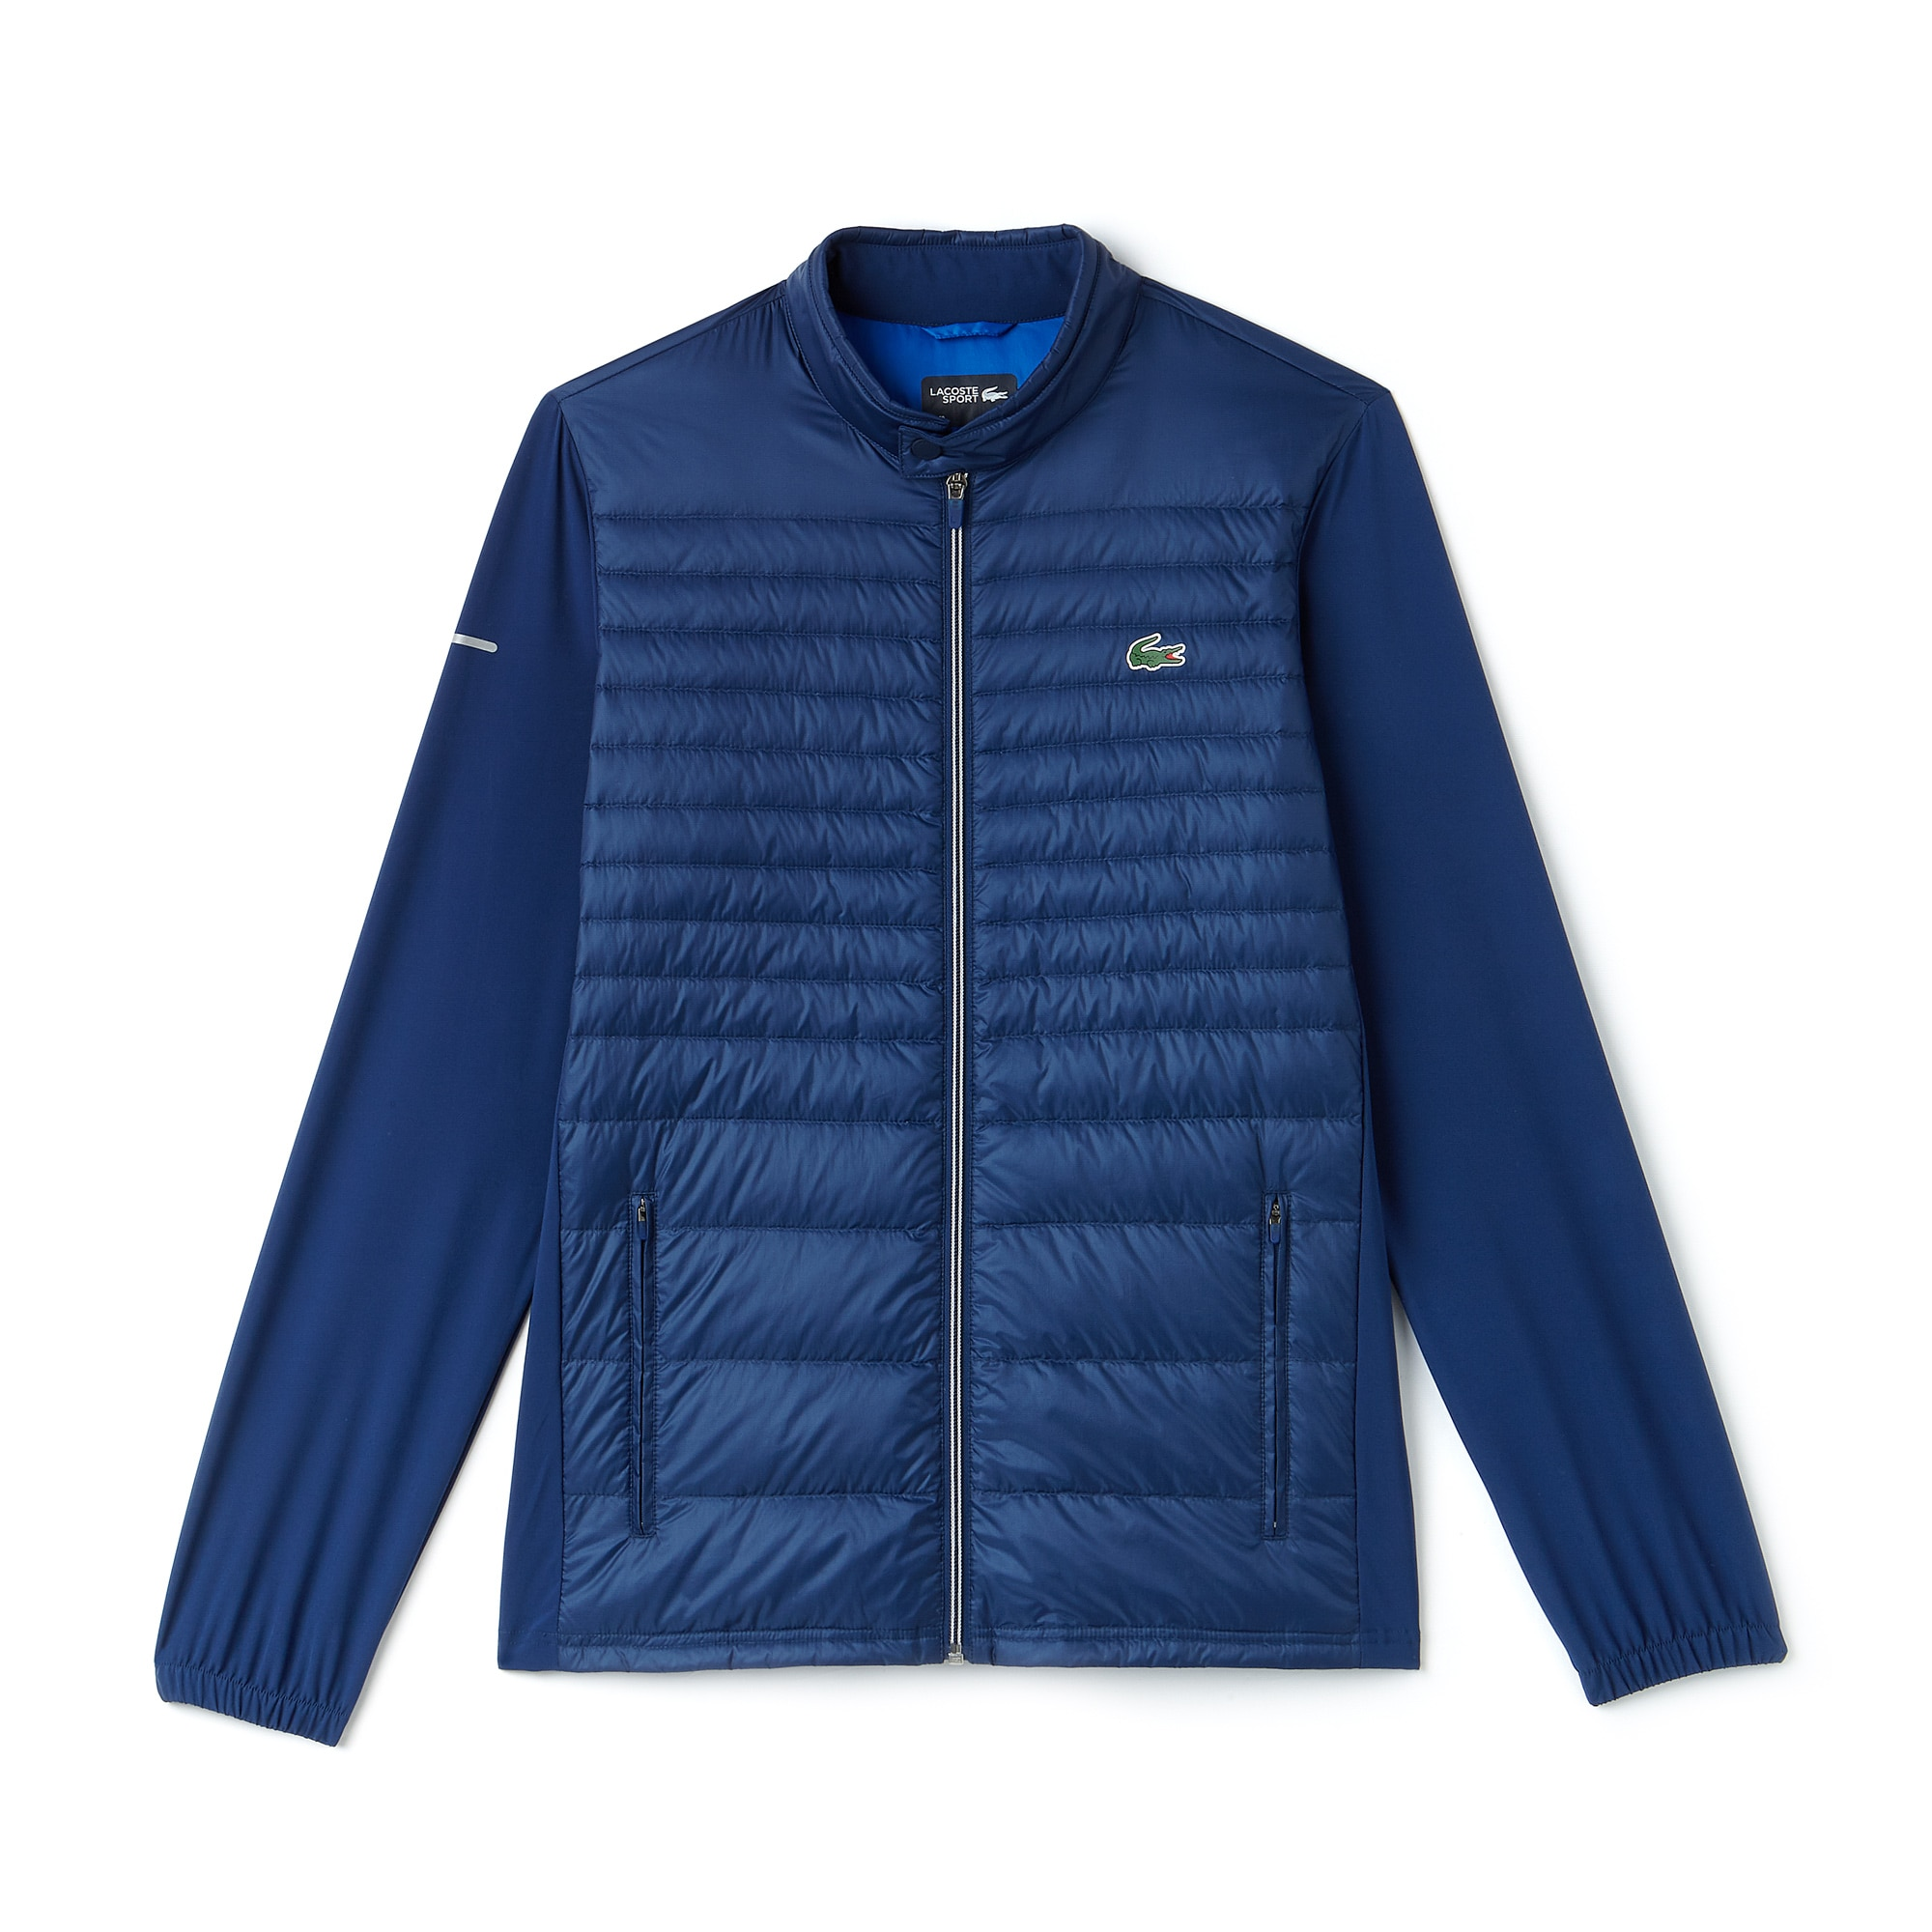 라코스테 스포츠 자켓 Lacoste Mens SPORT Water-Resistant Technical Quilted Golf Jacket,inkwell/blue royal